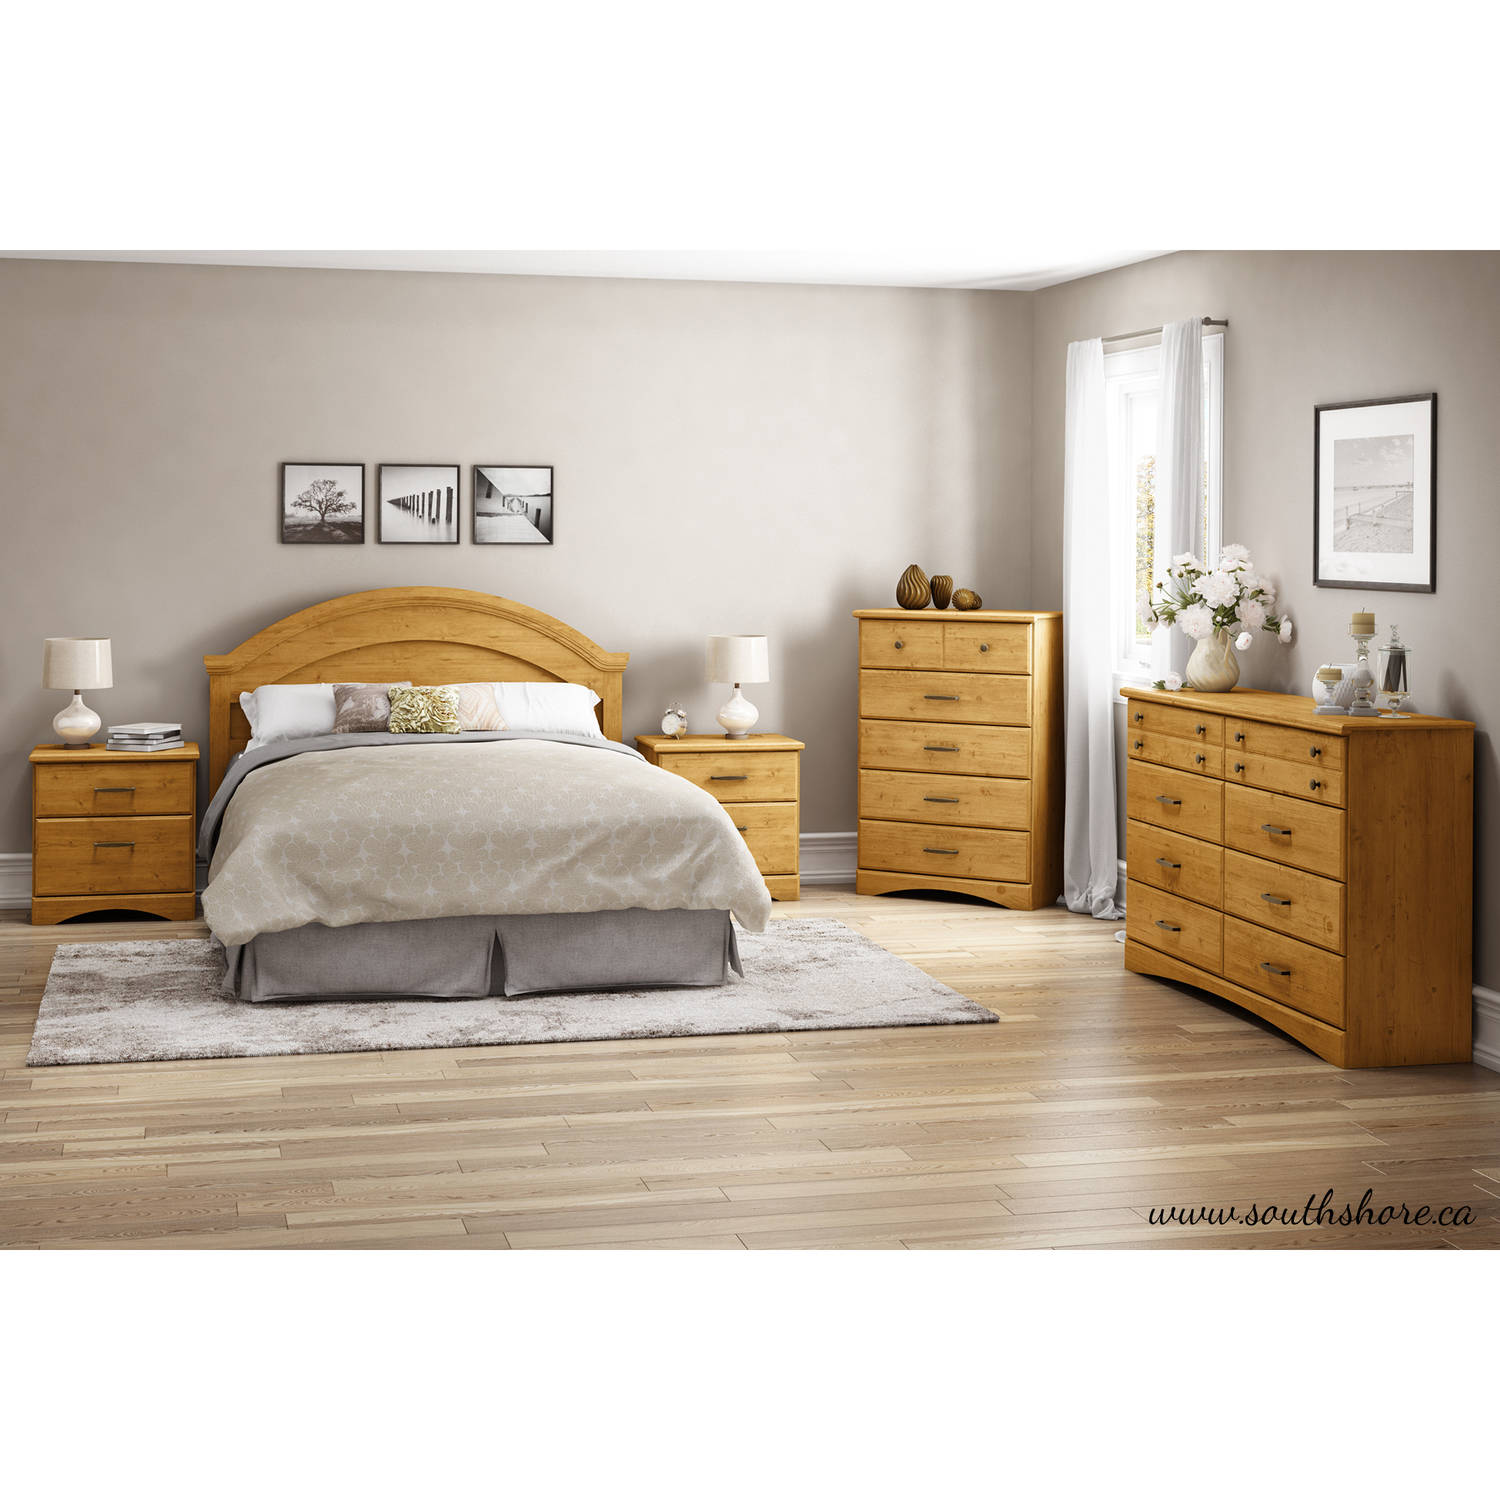 South Shore Cabana 6-Drawer Dresser, Country Pine by South Shore